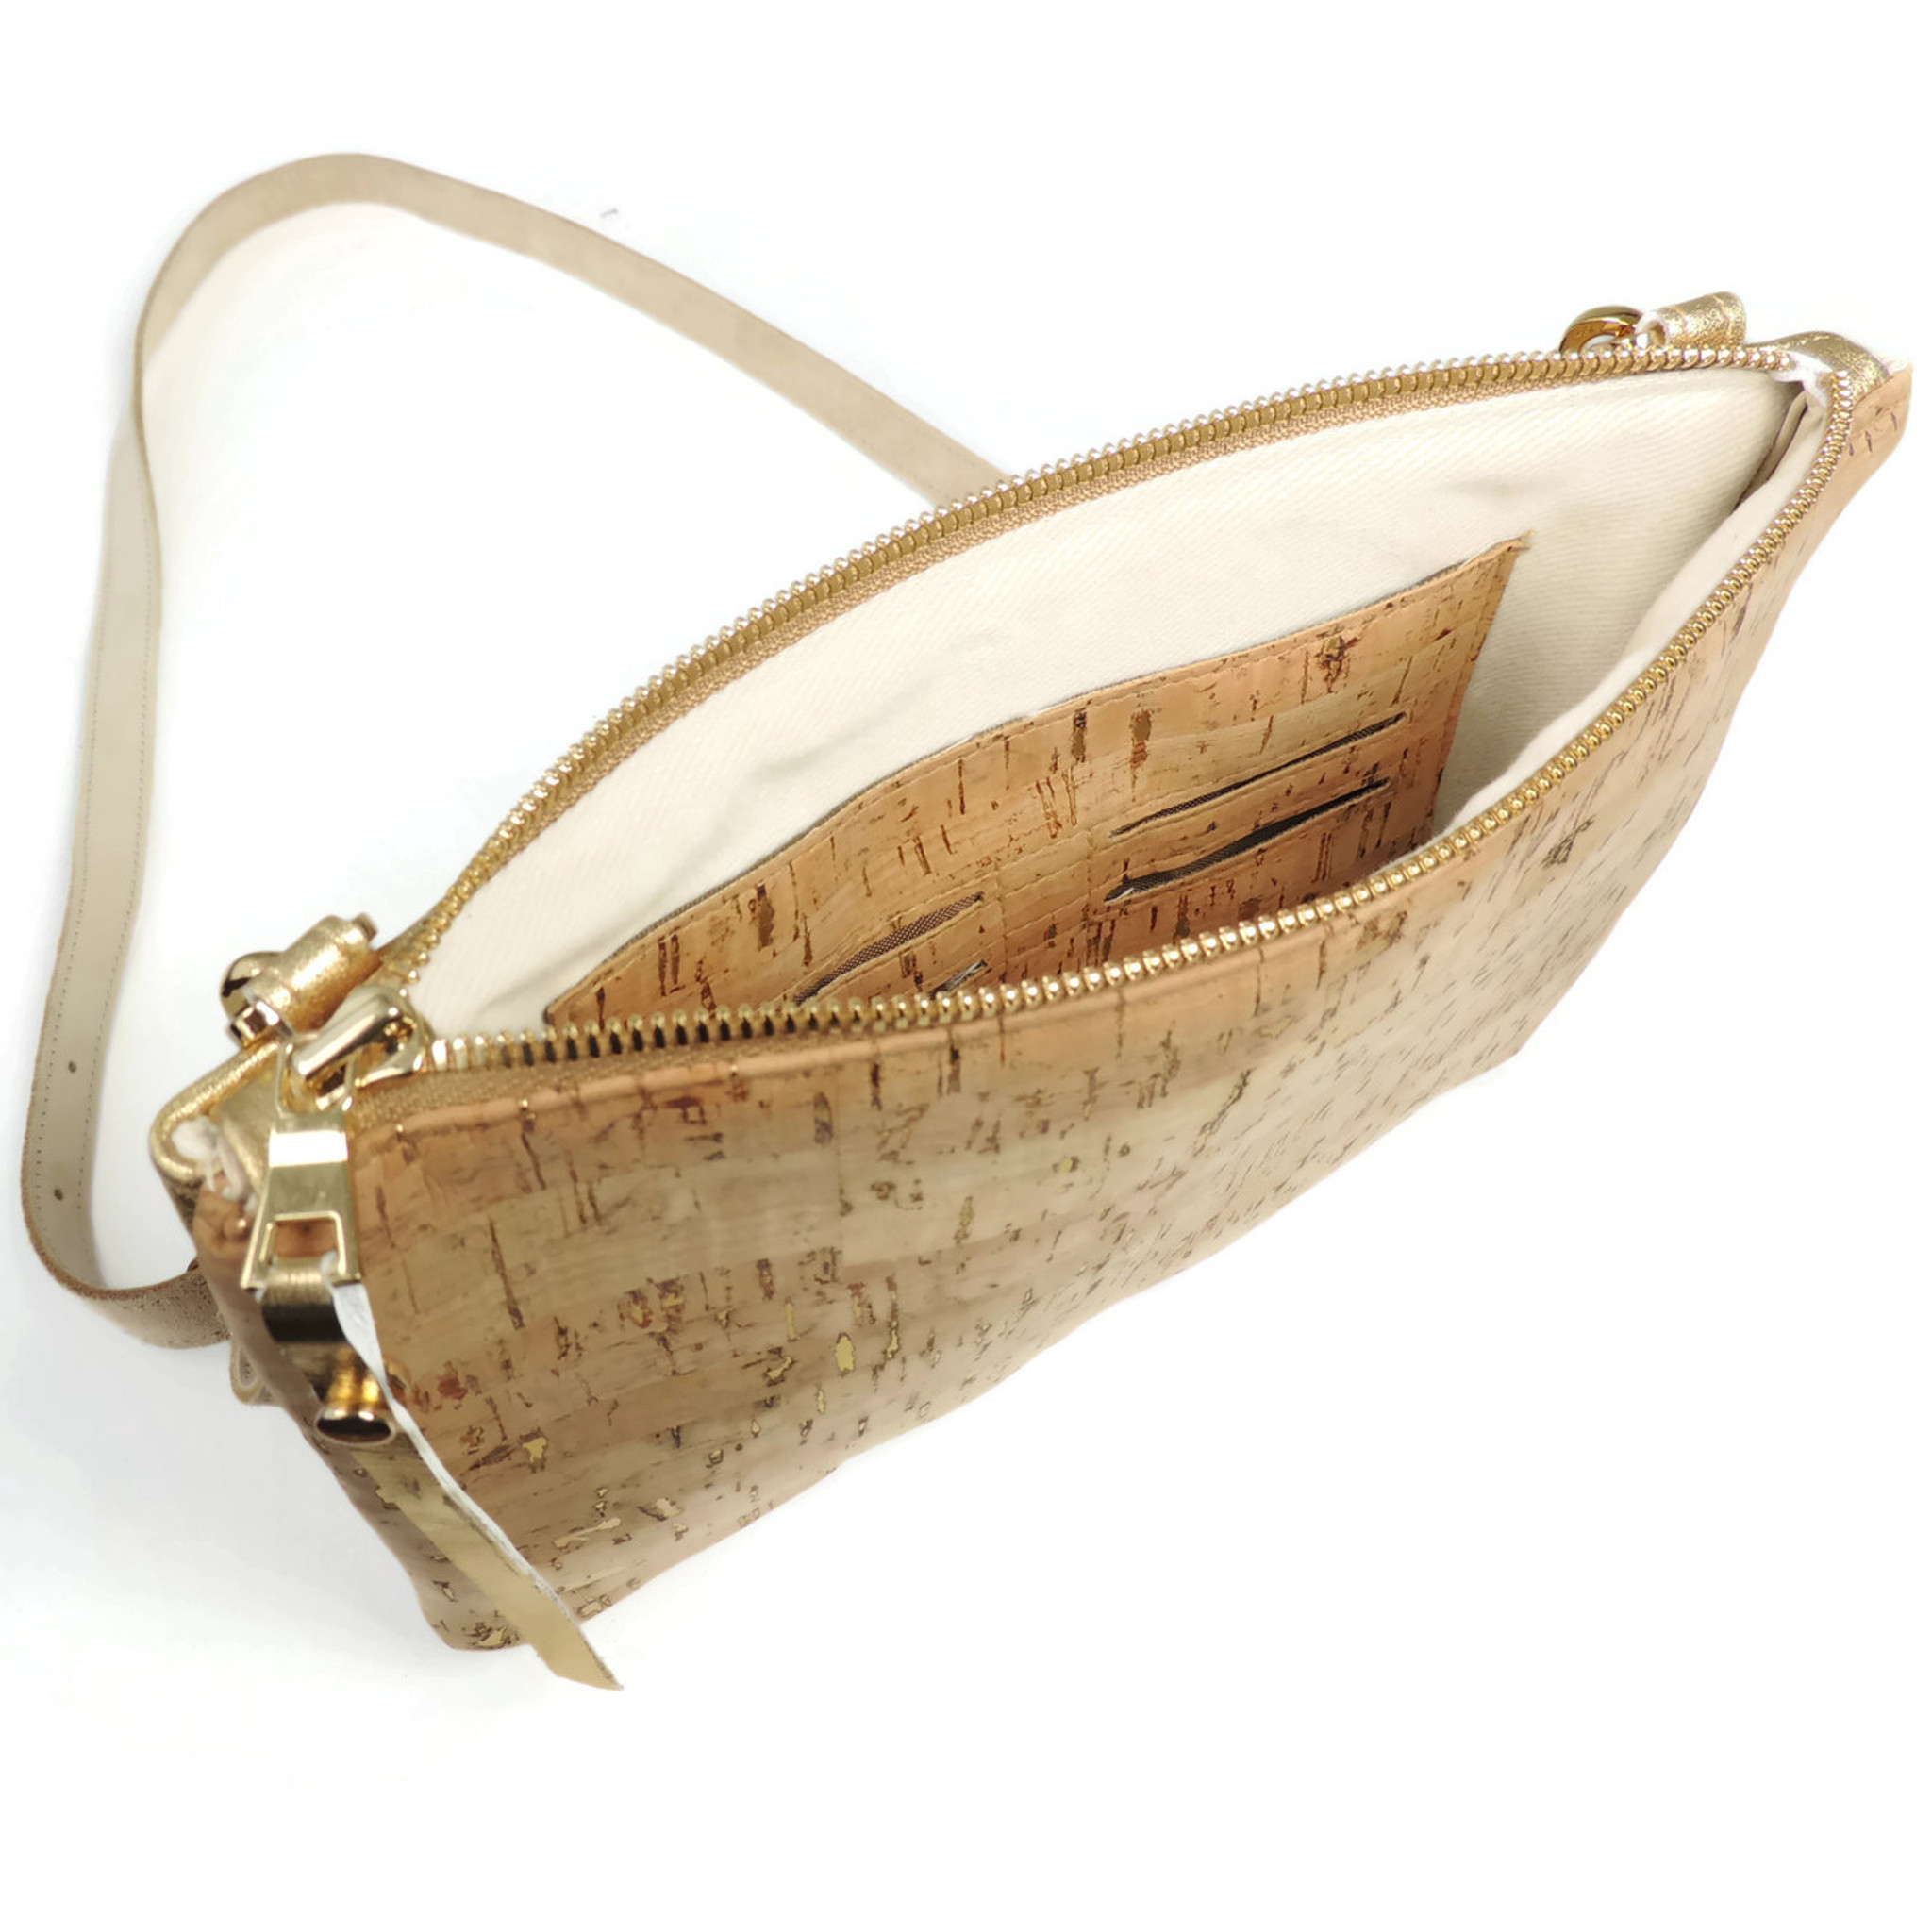 Cork & Leather Crossbody Purse in White Check Cork